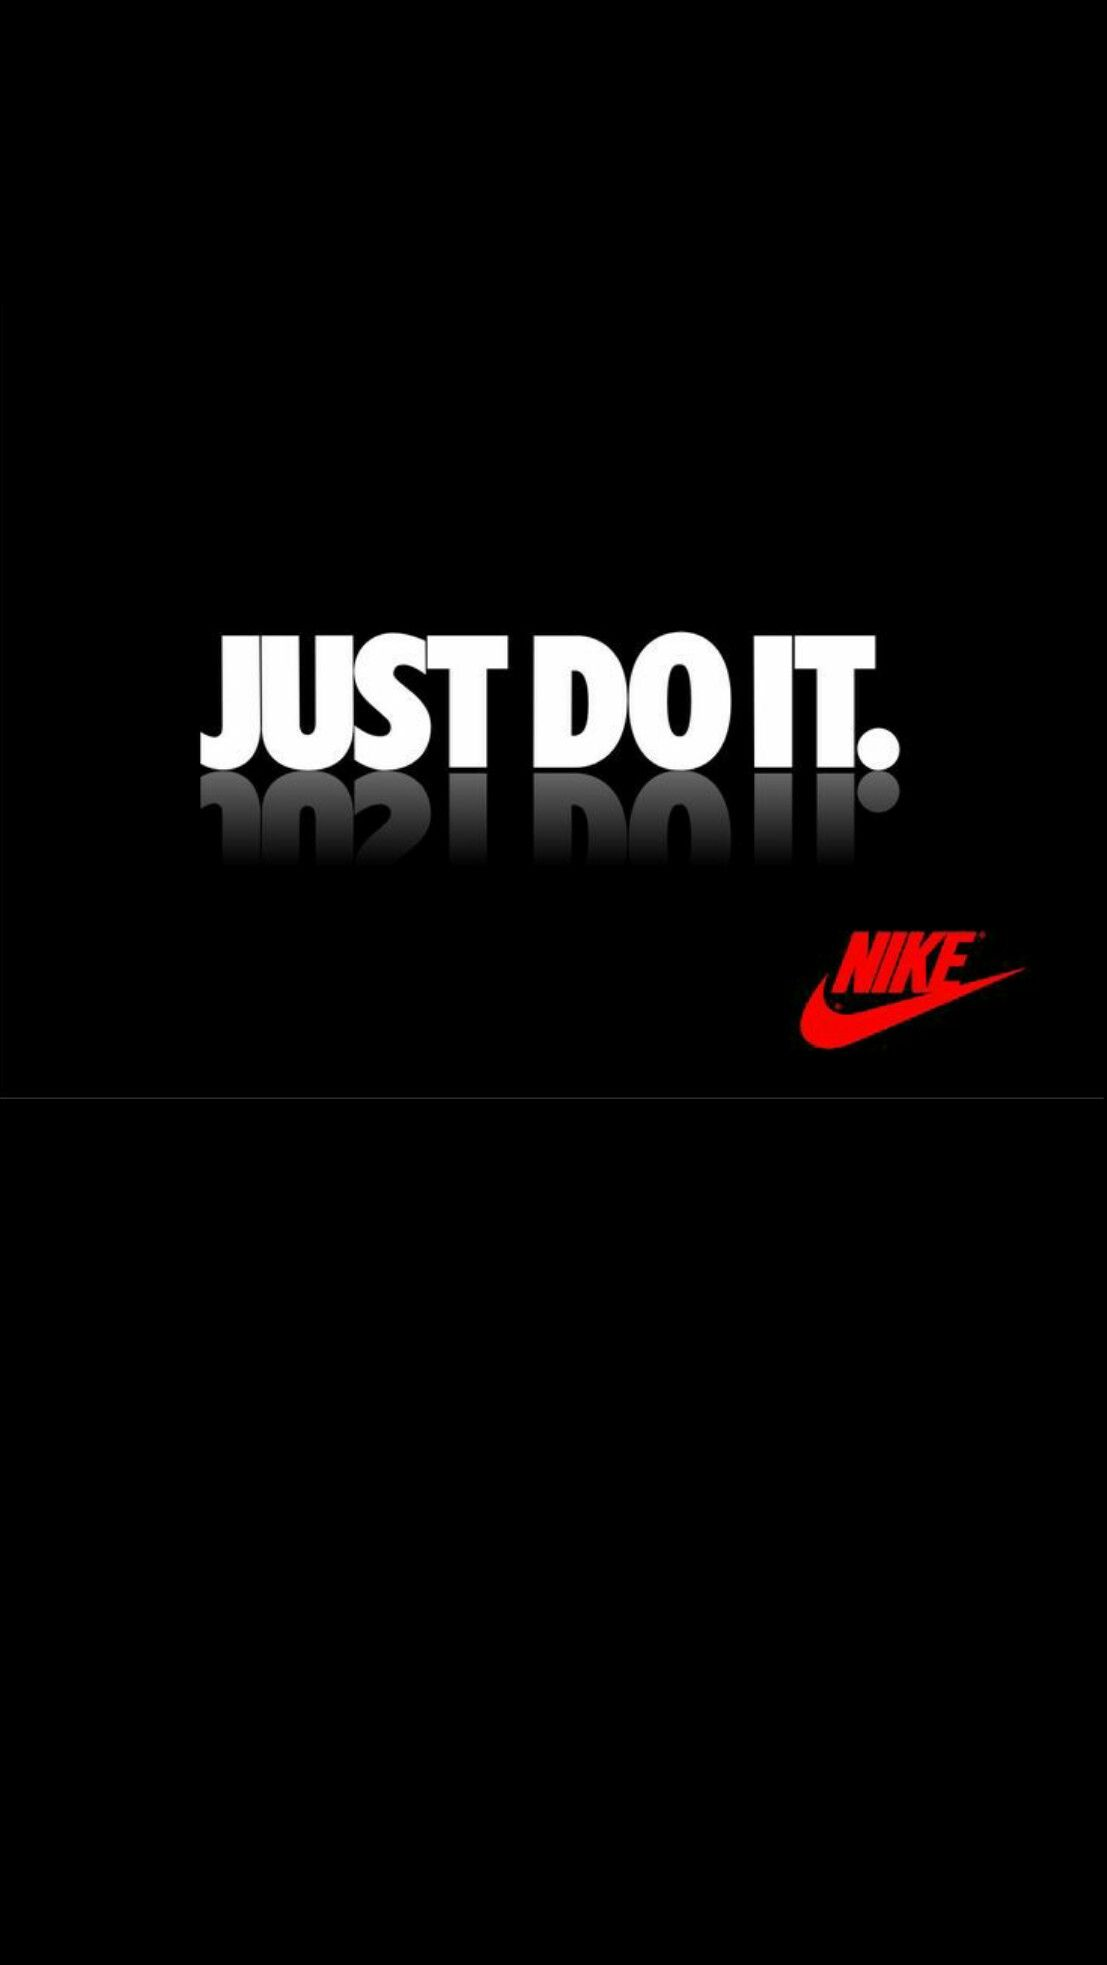 Nike Black Wallpaper Iphone Android Nike Wallpaper Cute Backgrounds For Iphone Just Do It Wallpapers